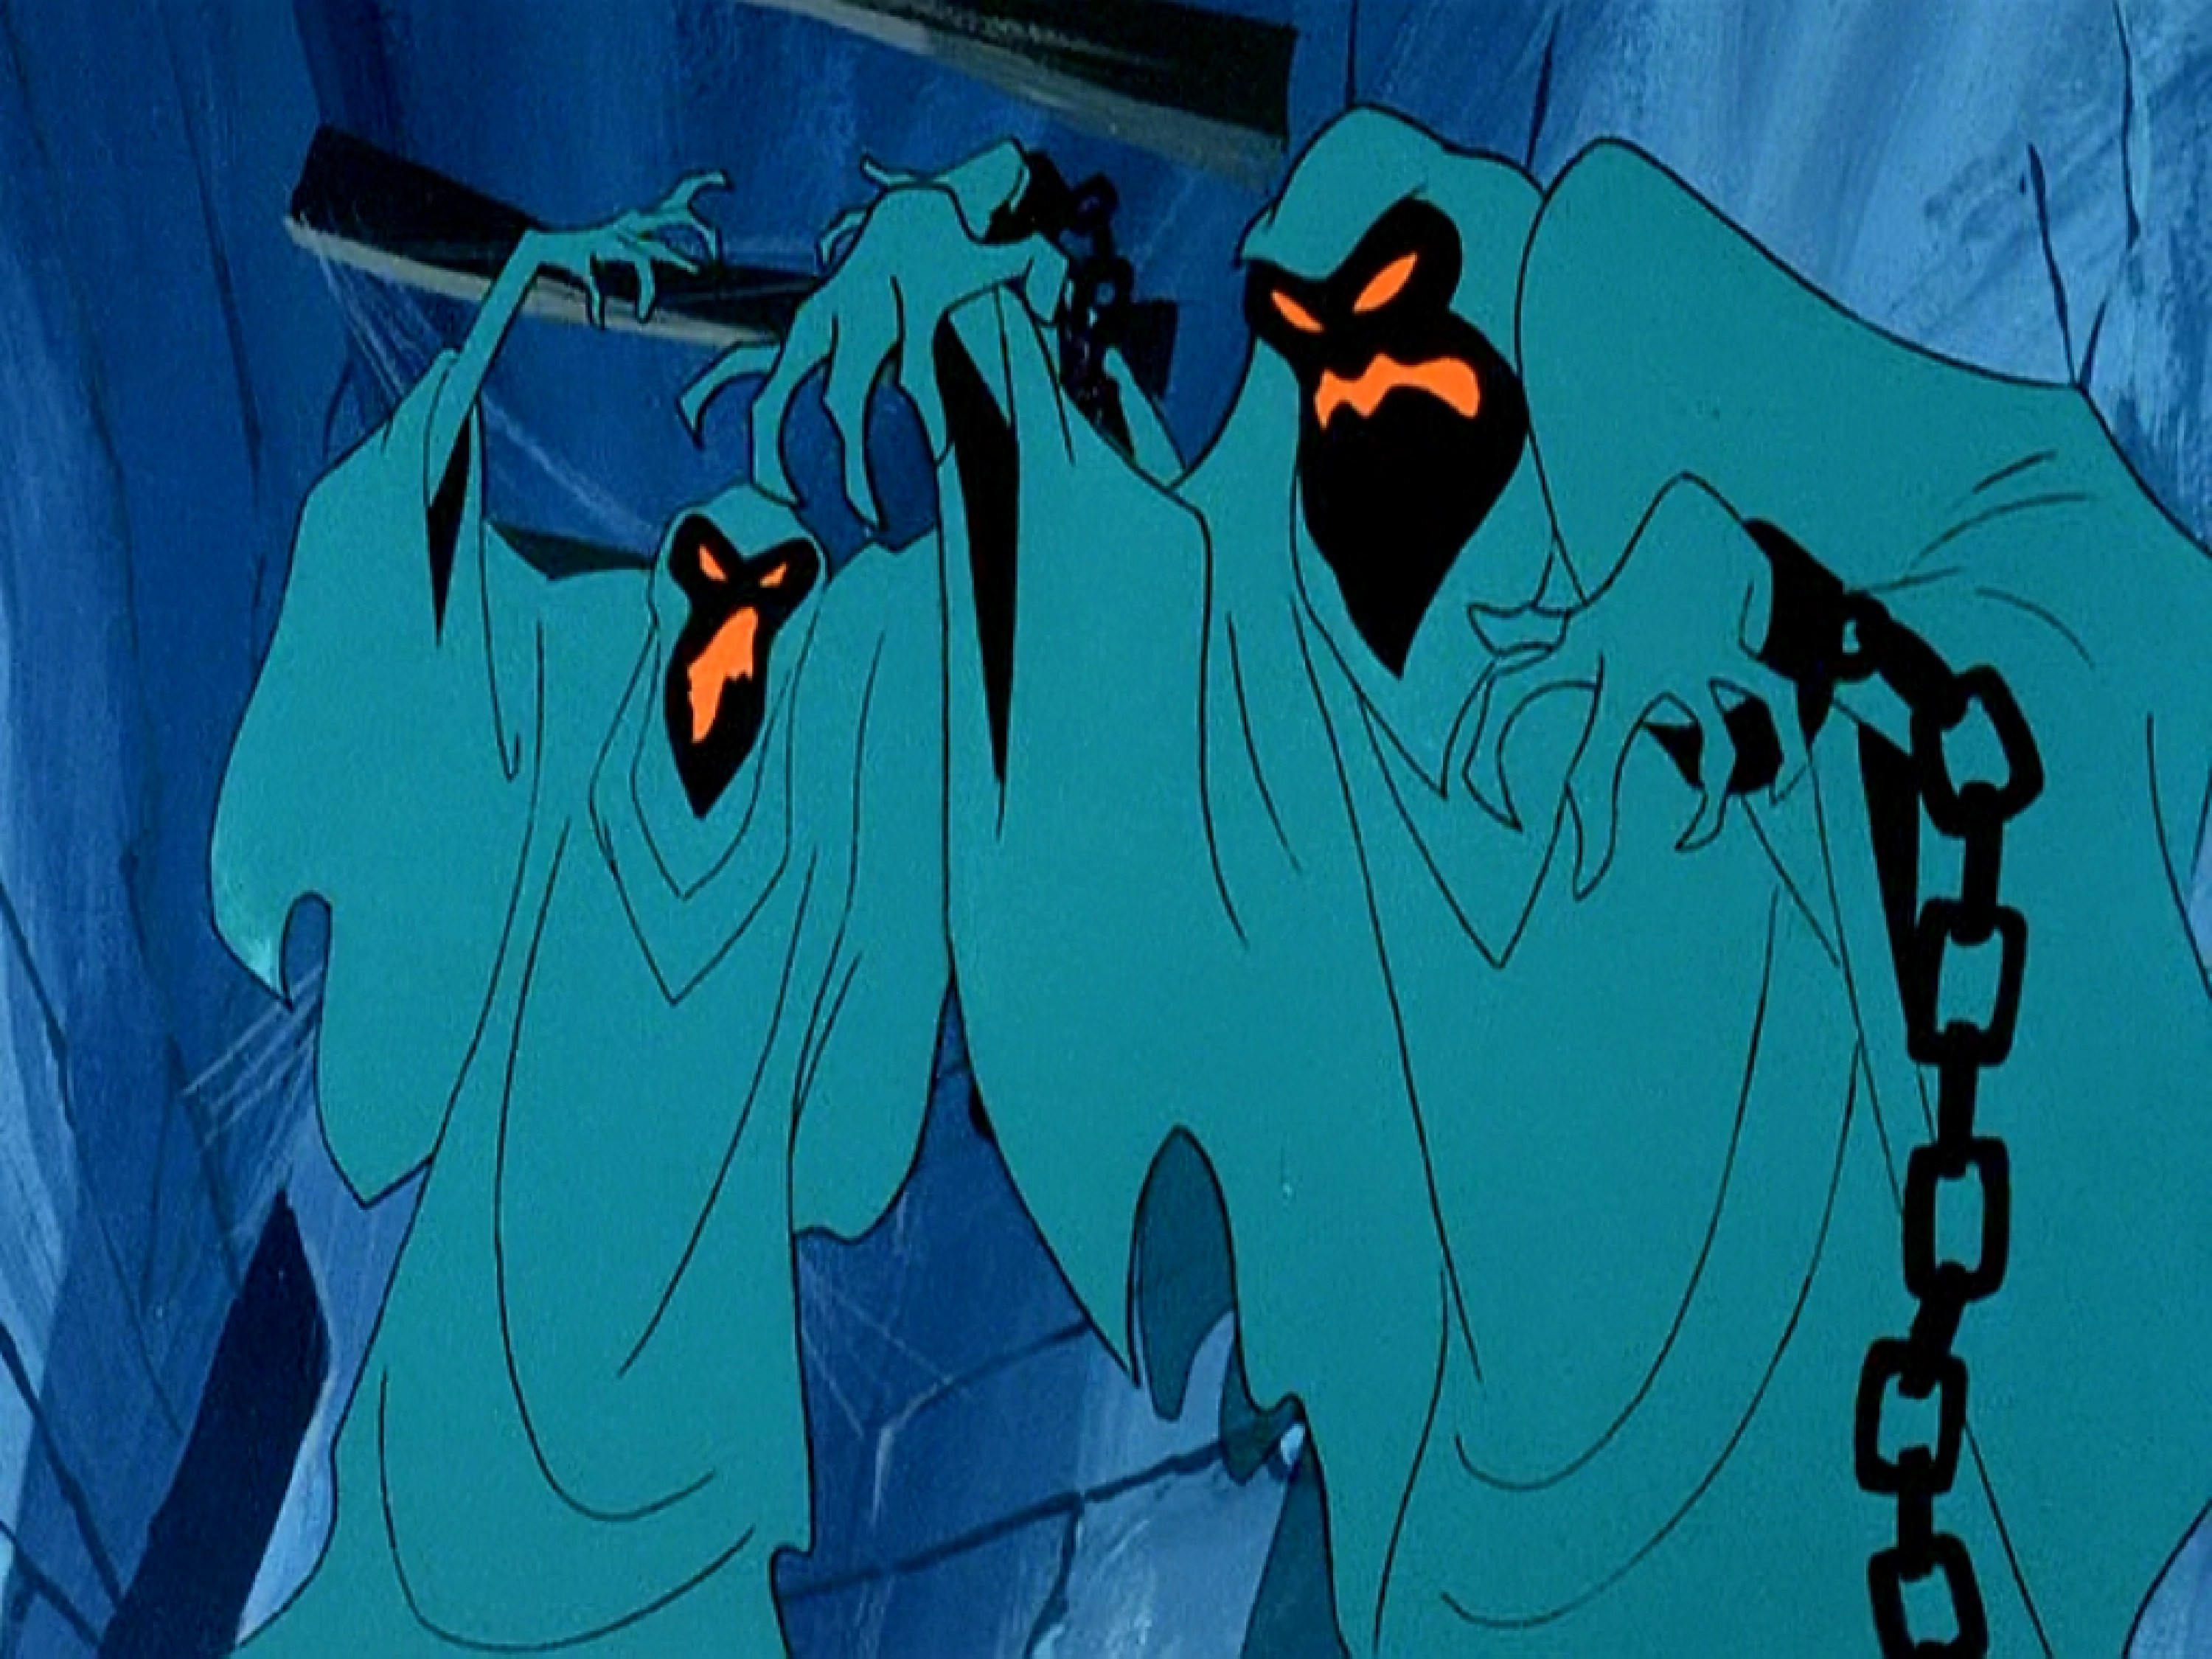 free coloring pages download : Green Ghosts A Night Of Fright Is No Delight Scoobypedia of Scooby Doo Villains Ghost on xsibe.us